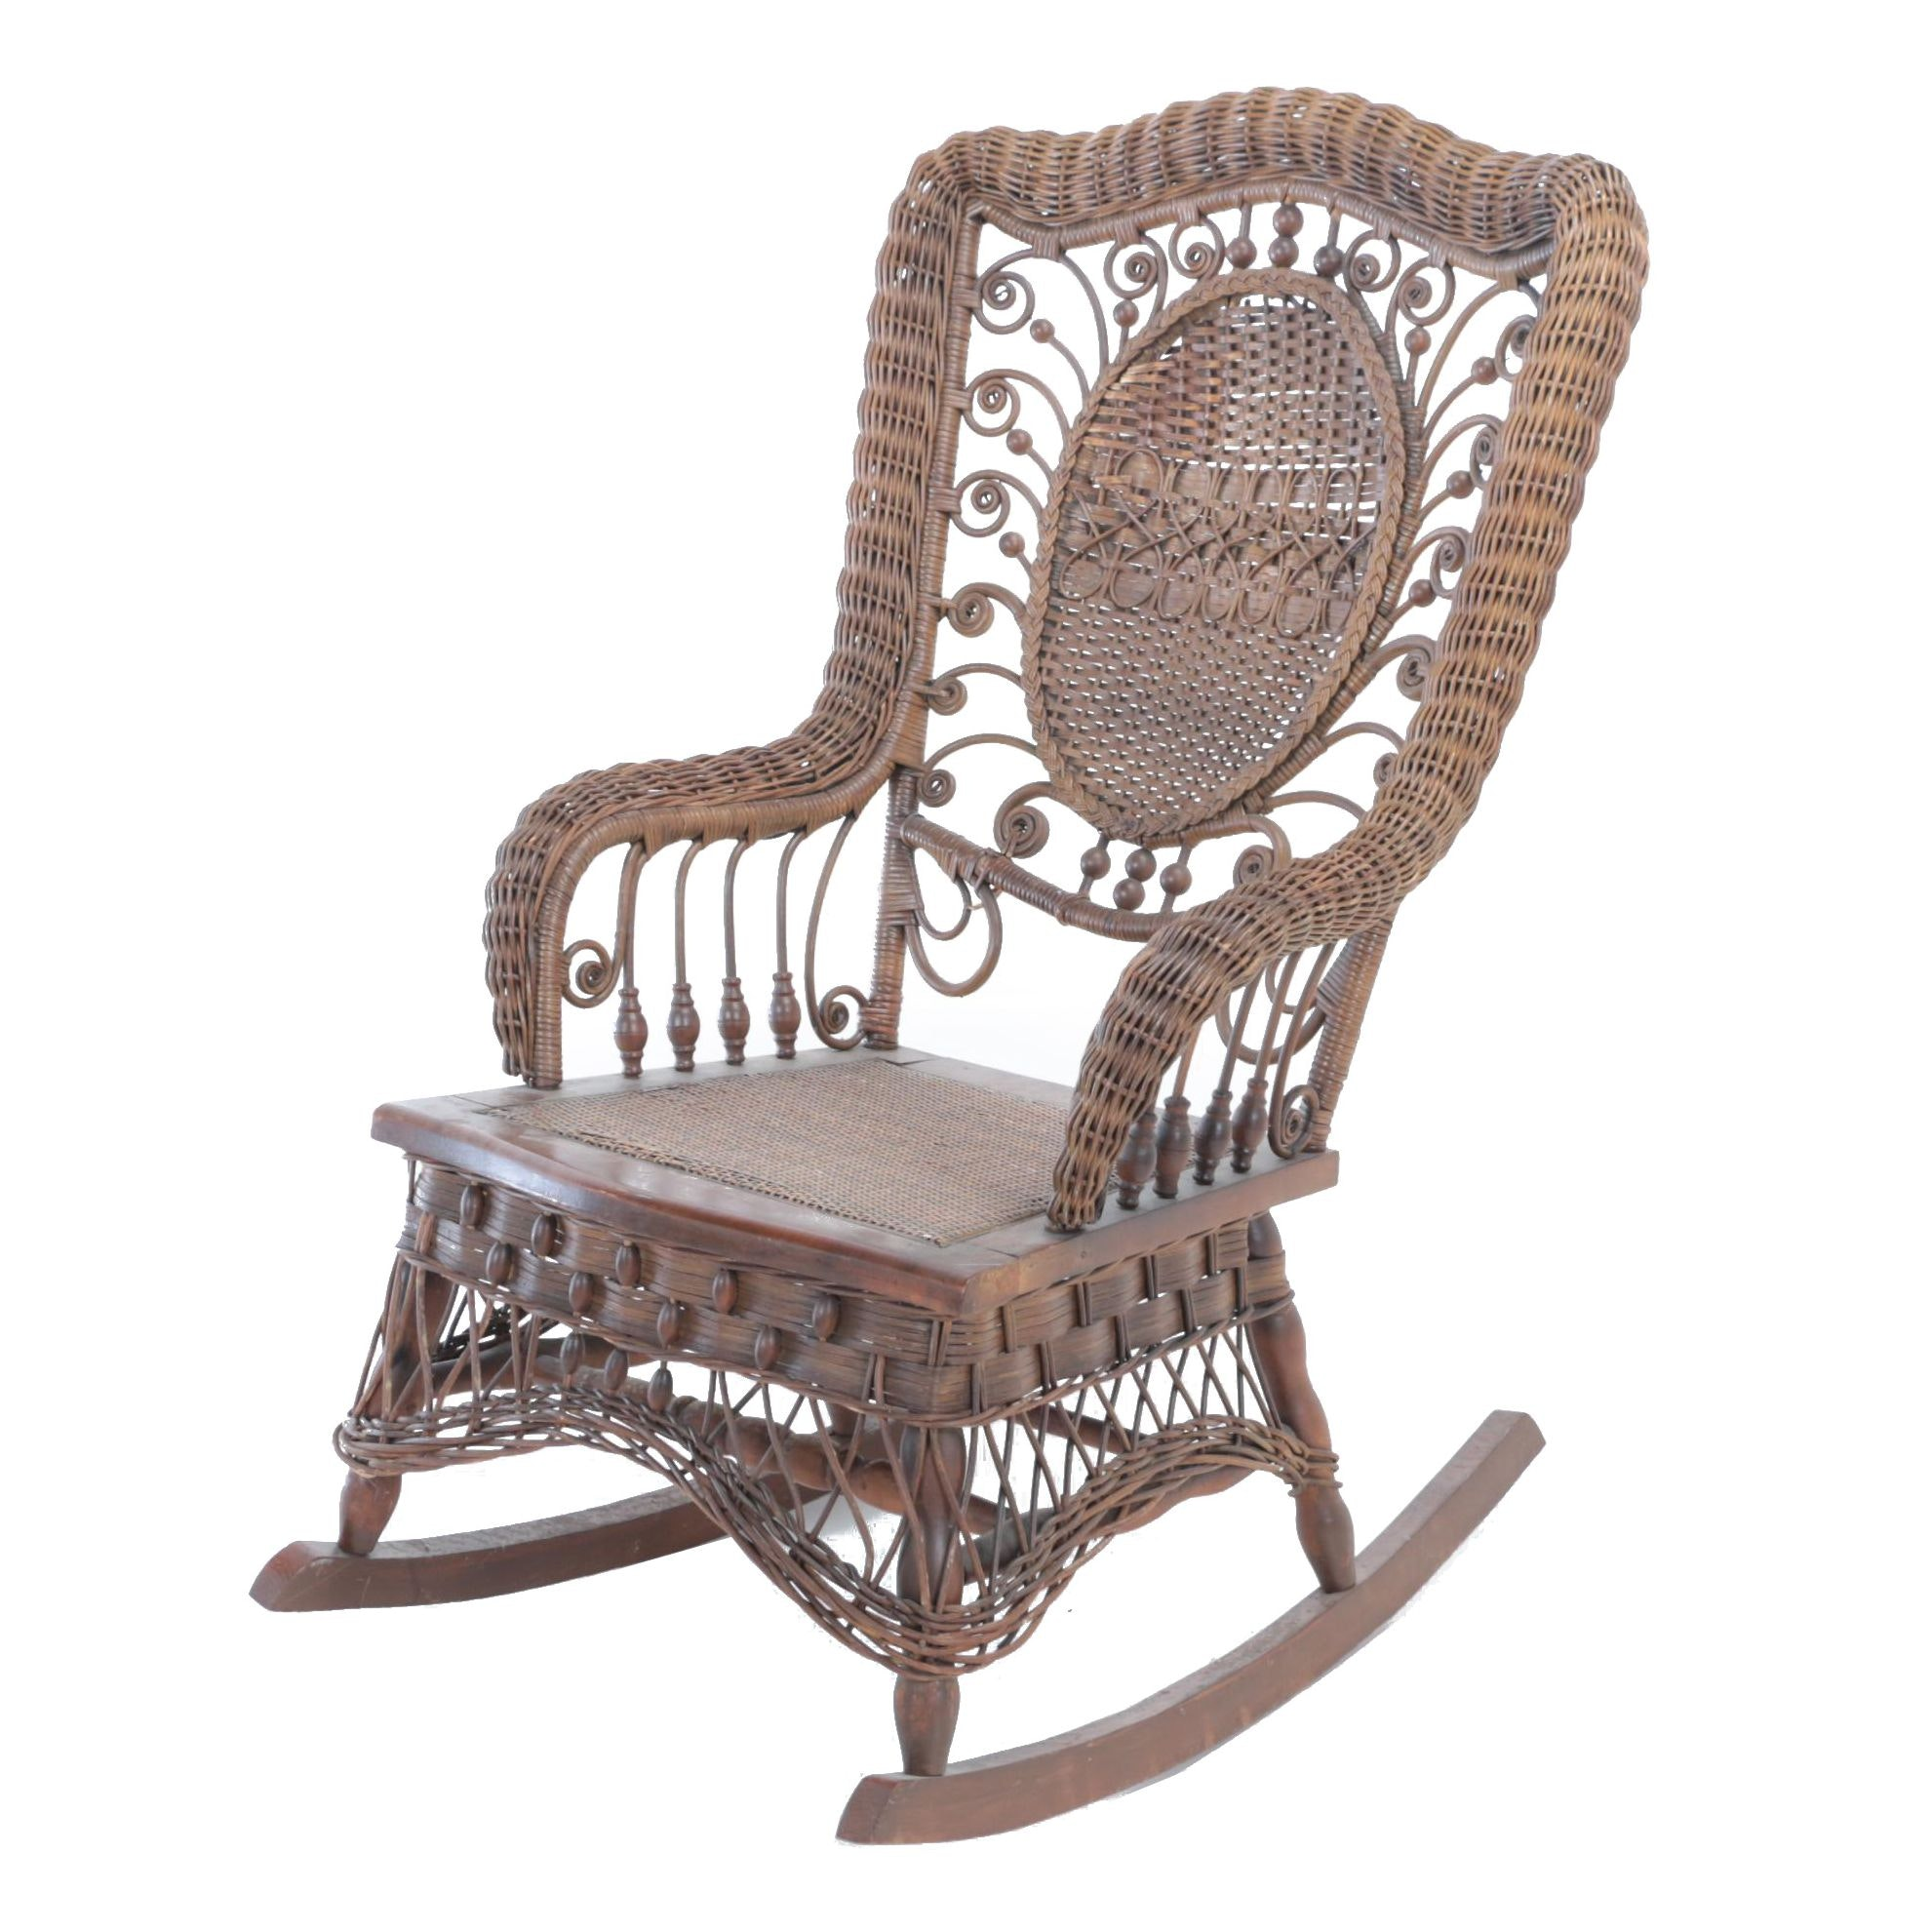 Late Victorian Brown Wicker Rocking Armchair, Late 19th/Early 20th Century